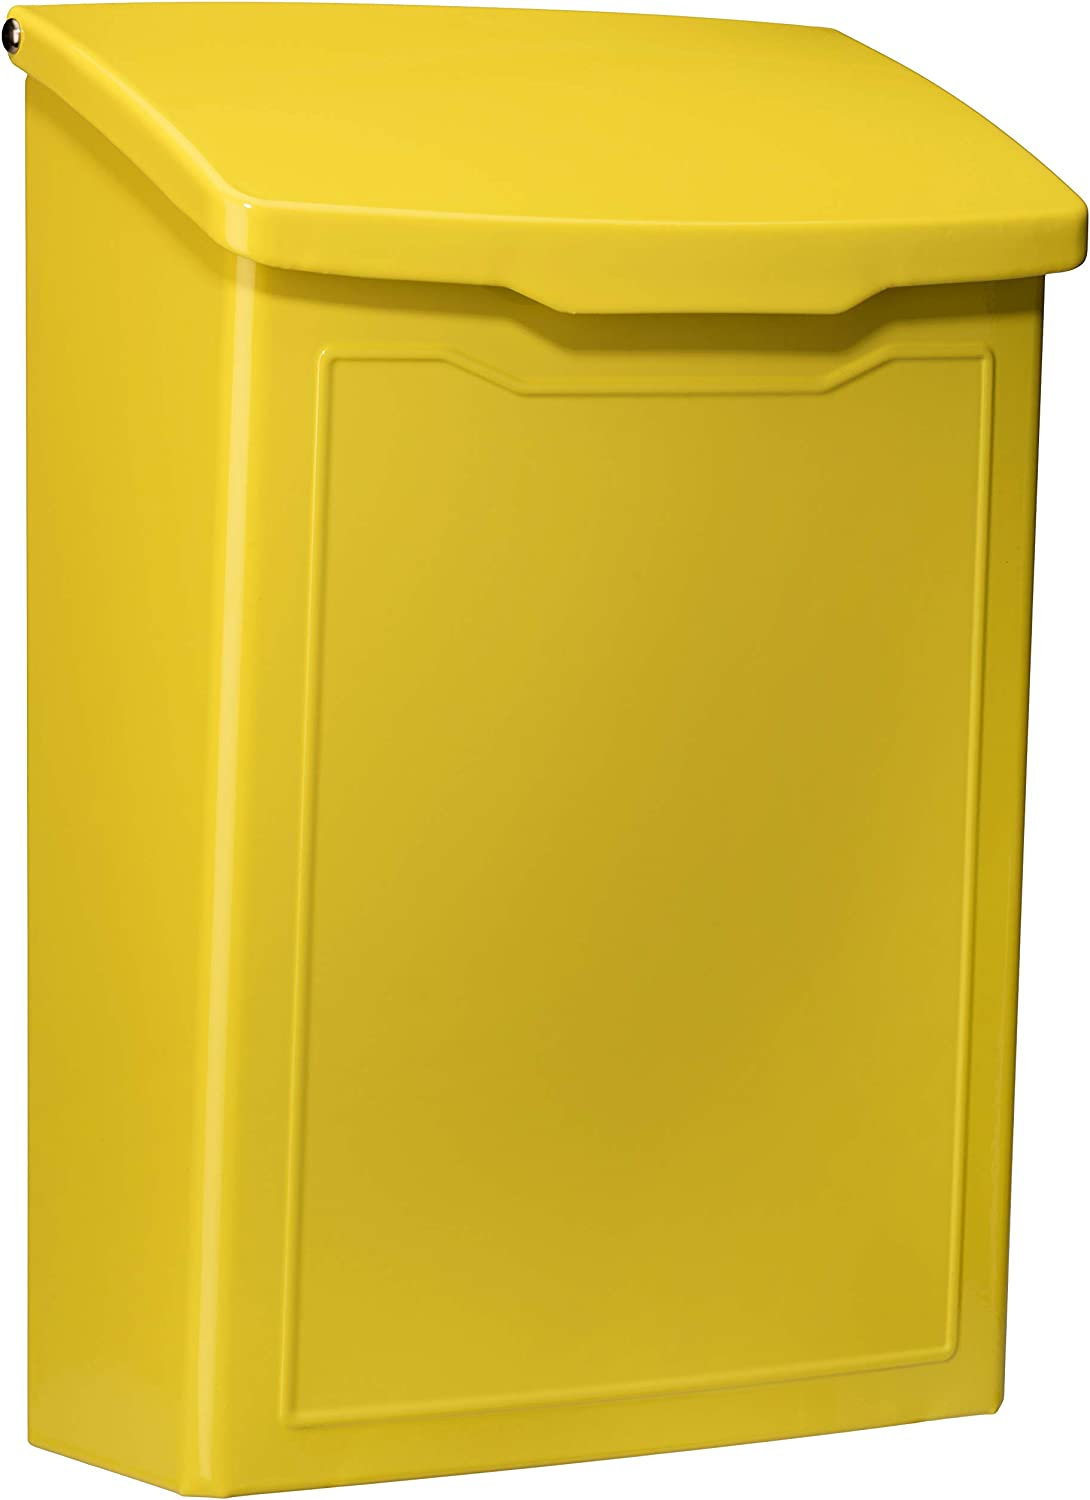 ARCHITECTURAL MAILBOXES 2681Y Marina Wall Mount Mailbox, Small, Yellow